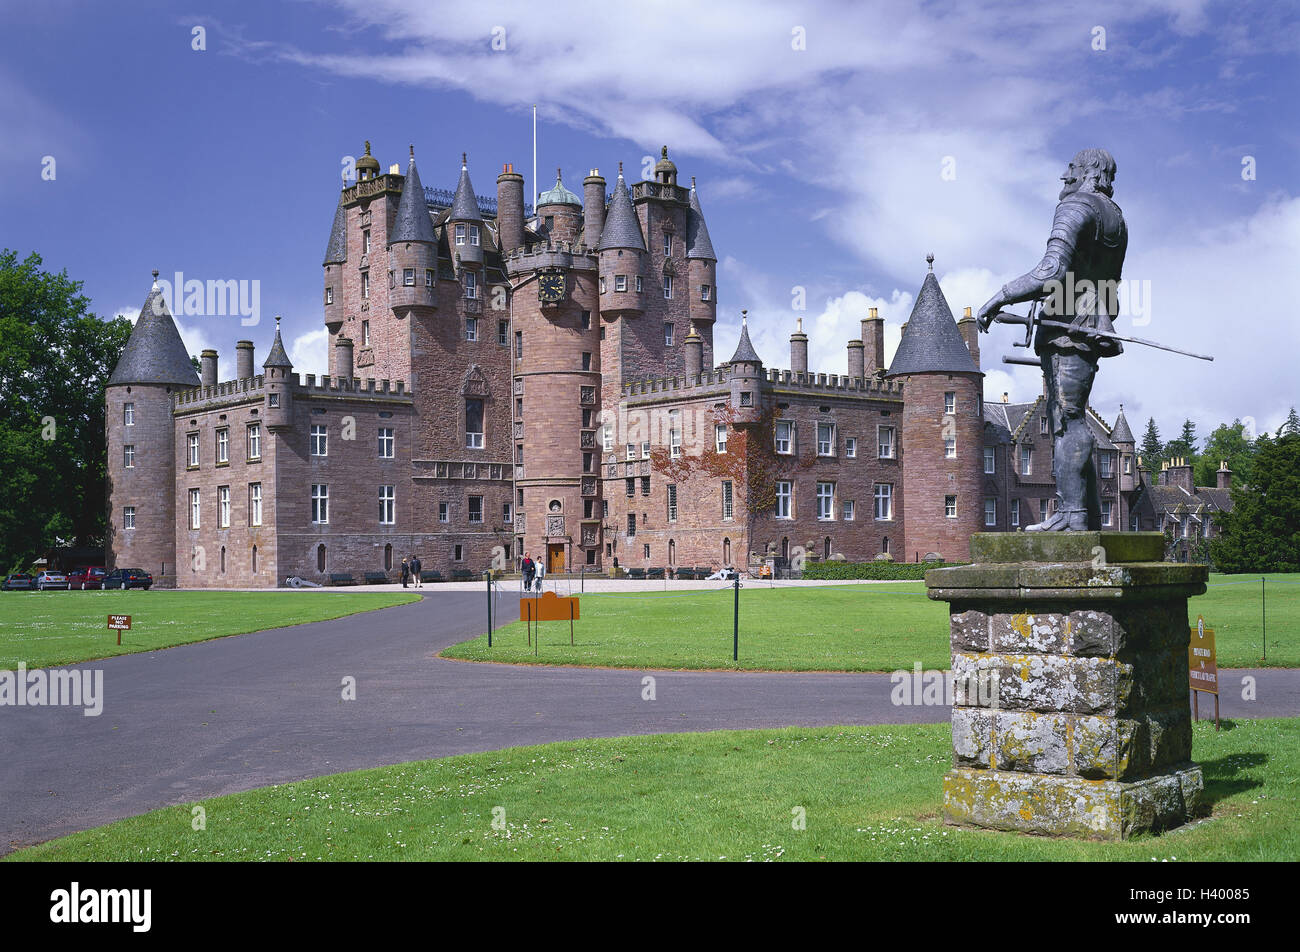 Great Britain, Scotland, Tayside, Glamis Castle, statue, England, park, mansion, - Stock Image